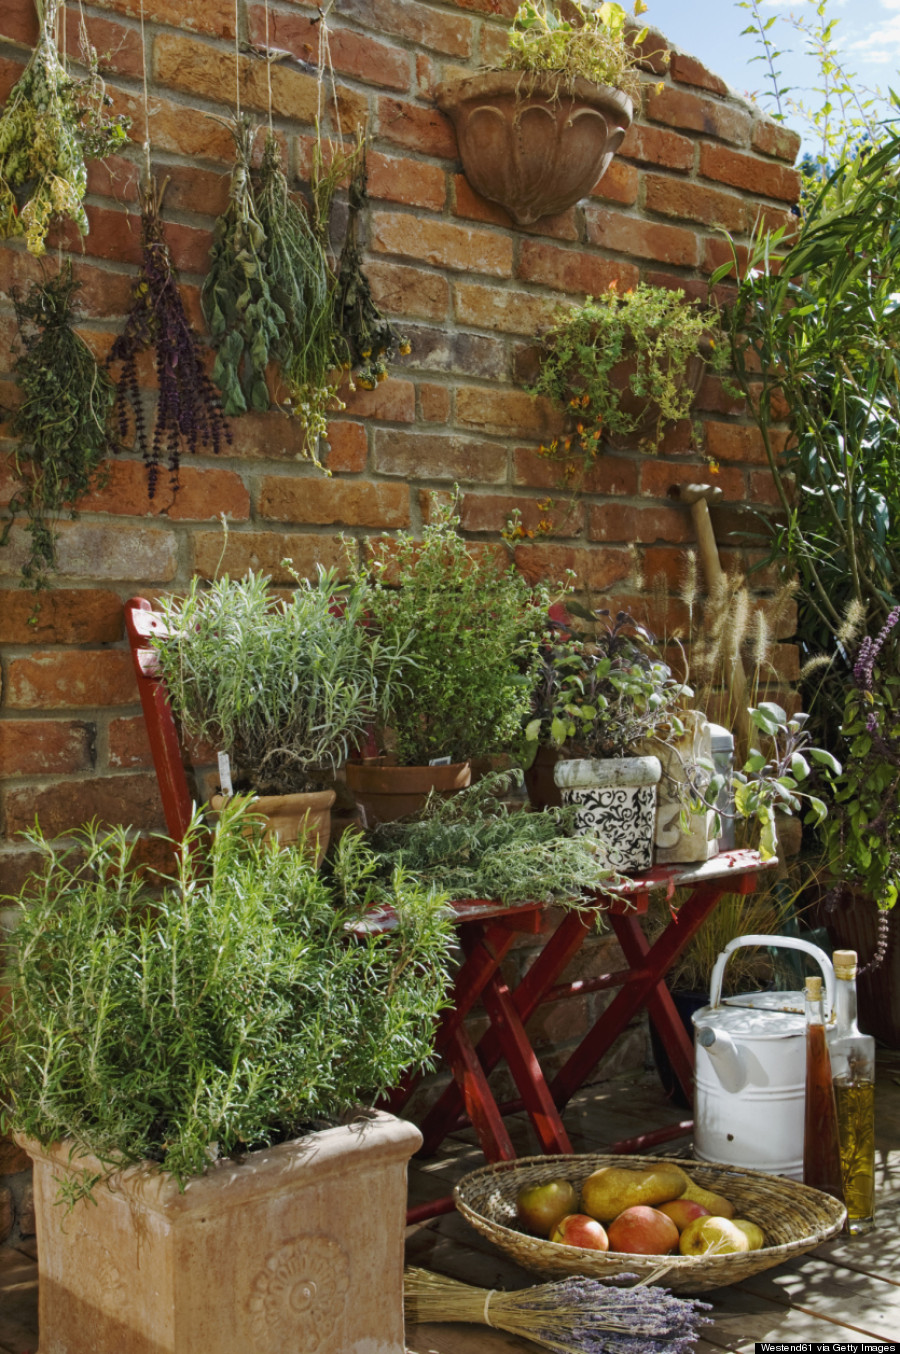 8 Ways To Garden When You Don\'t Even Have A Backyard | HuffPost